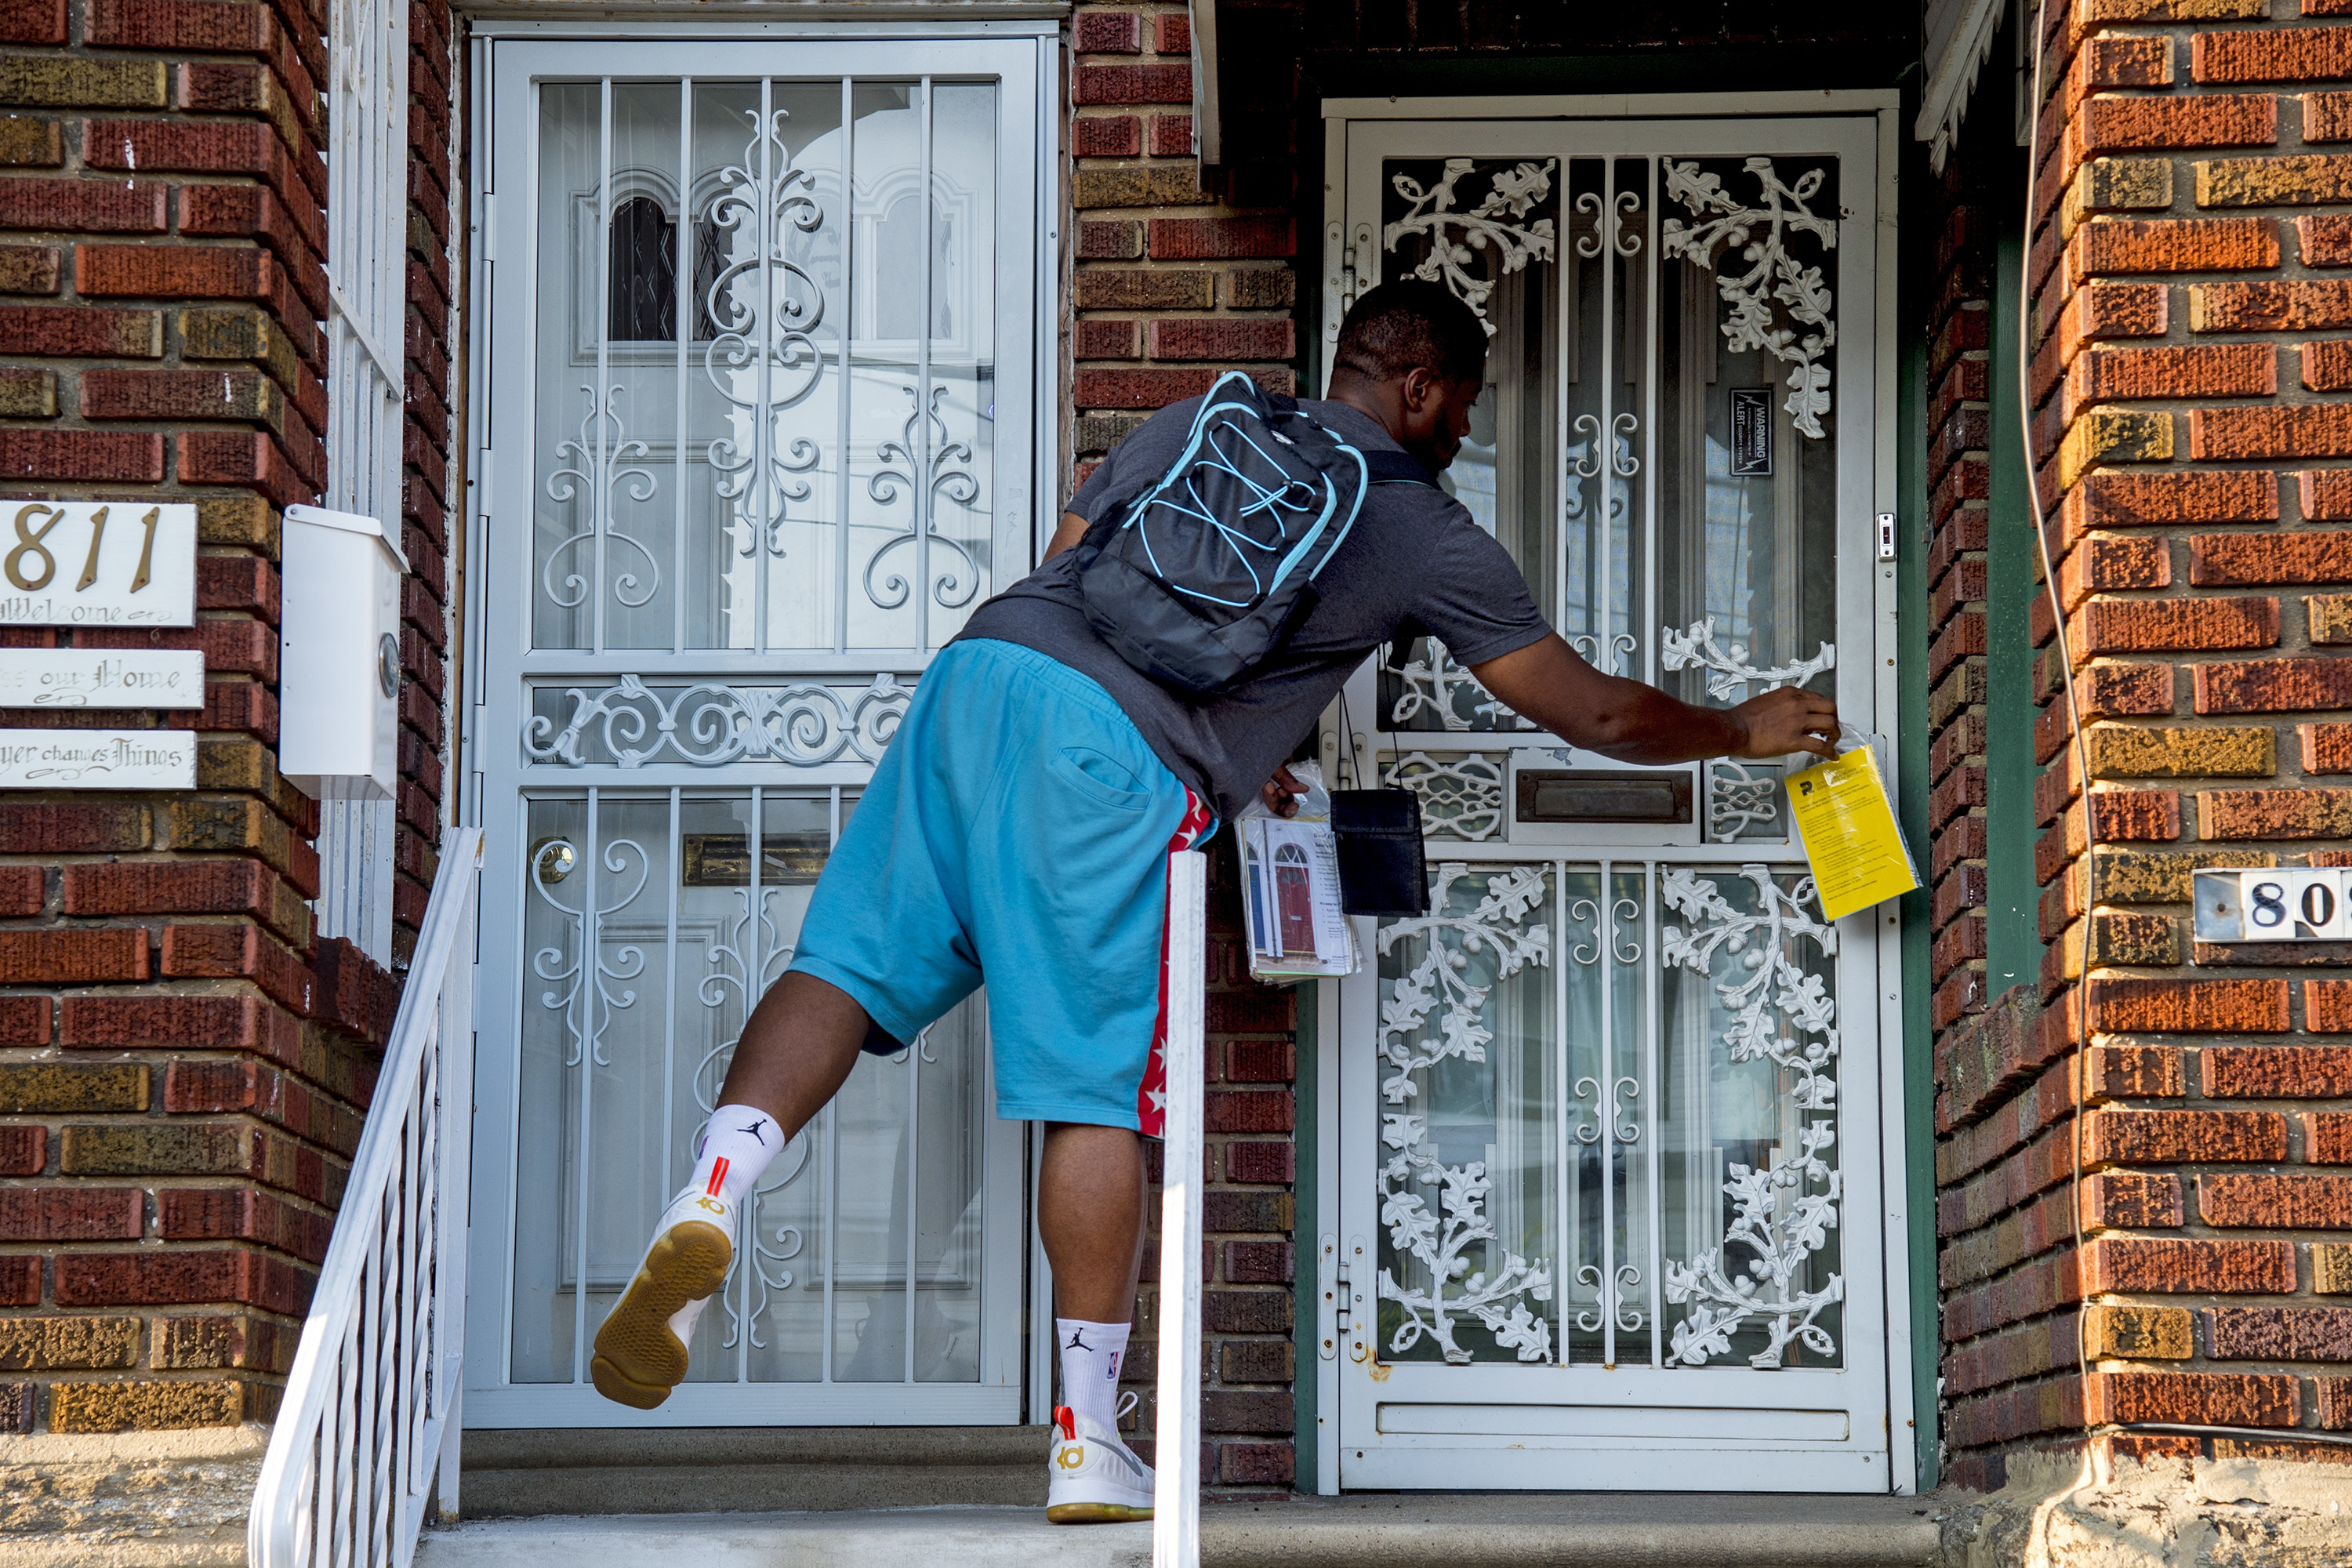 Eddie Howard, a canvasser with Community Marketing Concepts, a marketing consultant group contracted by the city´s Department of Revenue, goes door-to-door in West Oak Lane, leaving information packets and talking to homeowners about tax relief programs.